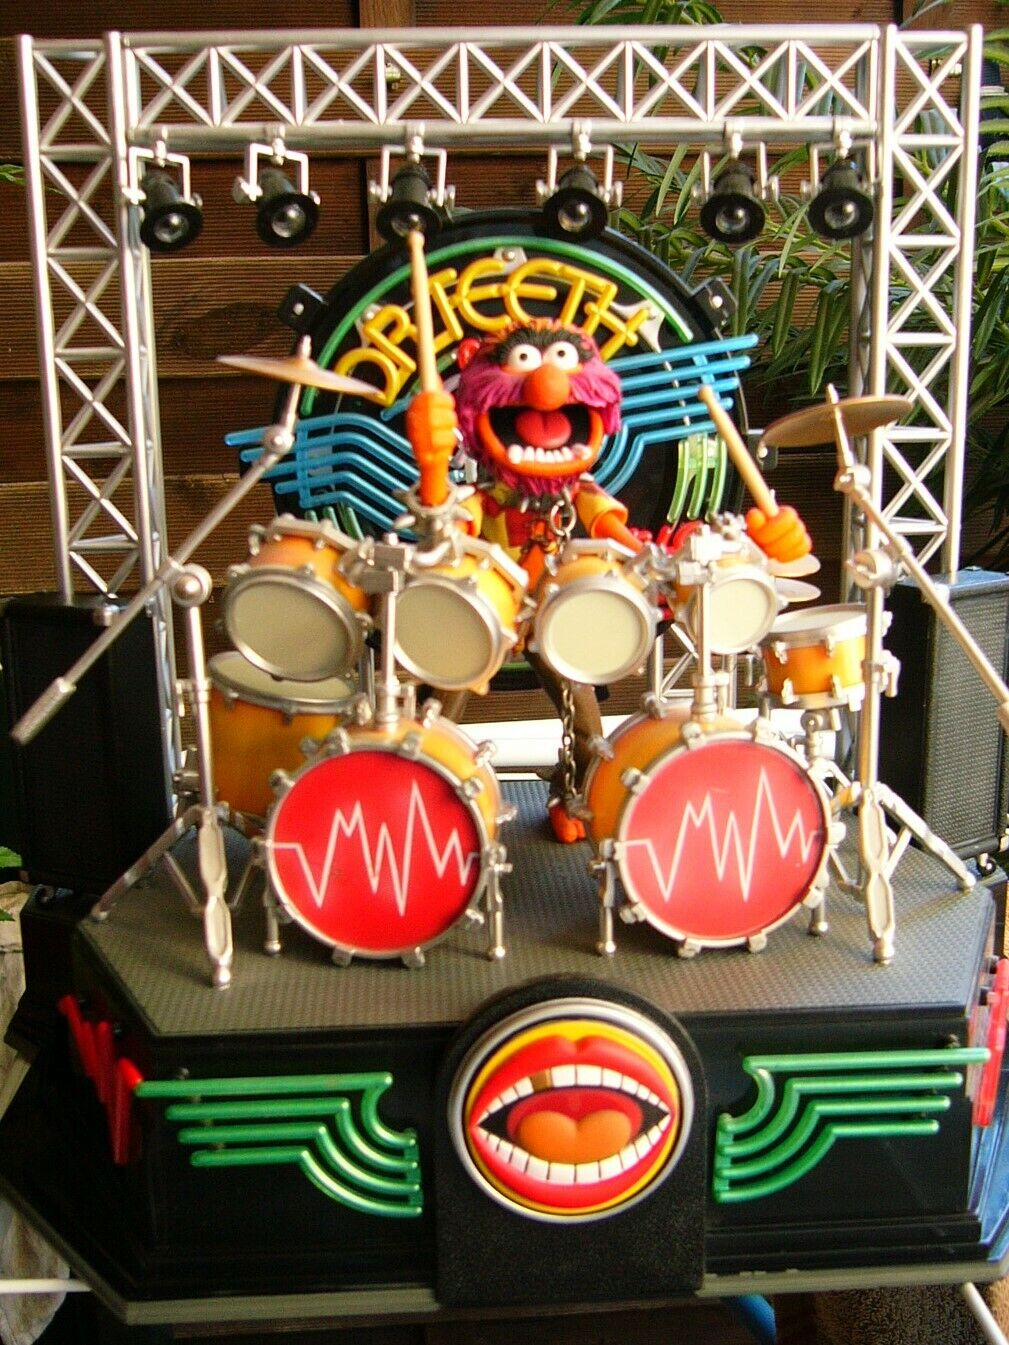 Palisades - Electric Mayhem Playset with Animal Drumset - Muppets- Muppet Show.